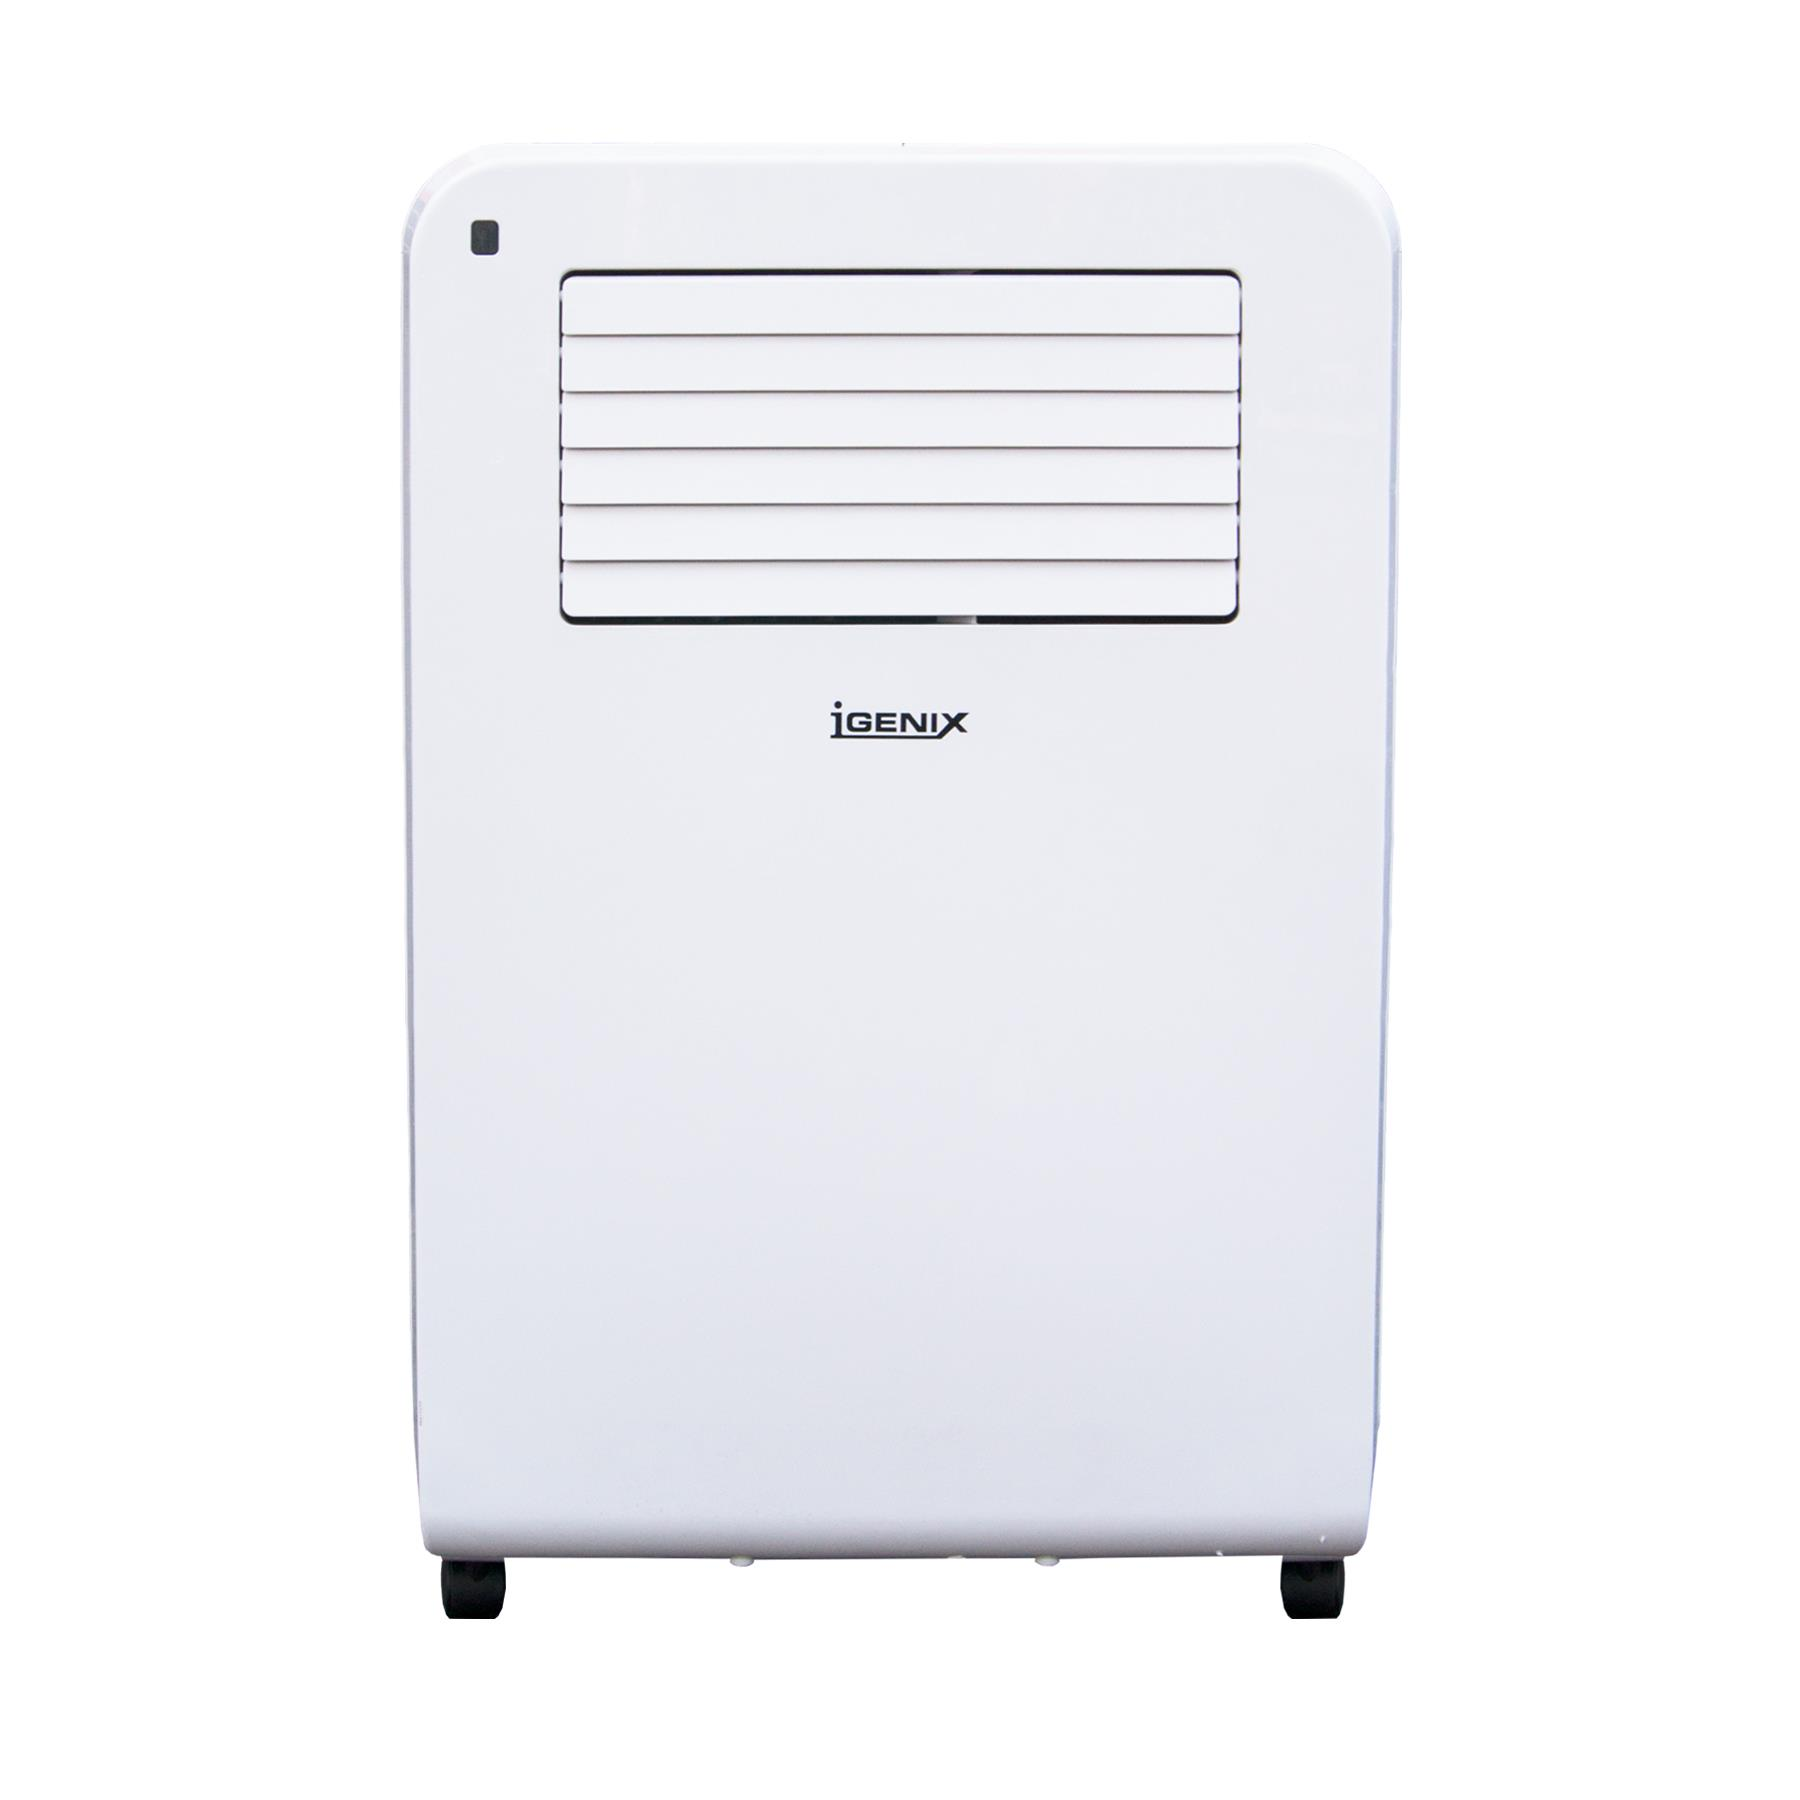 Installateur Kiest Lucht Water Warmtepomp In Eigen Woning likewise Tunnel Furnace Gold Silver also Igenix Ig9903 11500btu Portable Air Conditioning Unit moreover Need New Insulation Learn About The Best Types And Placement moreover Product product id 27235. on home heating cooling units